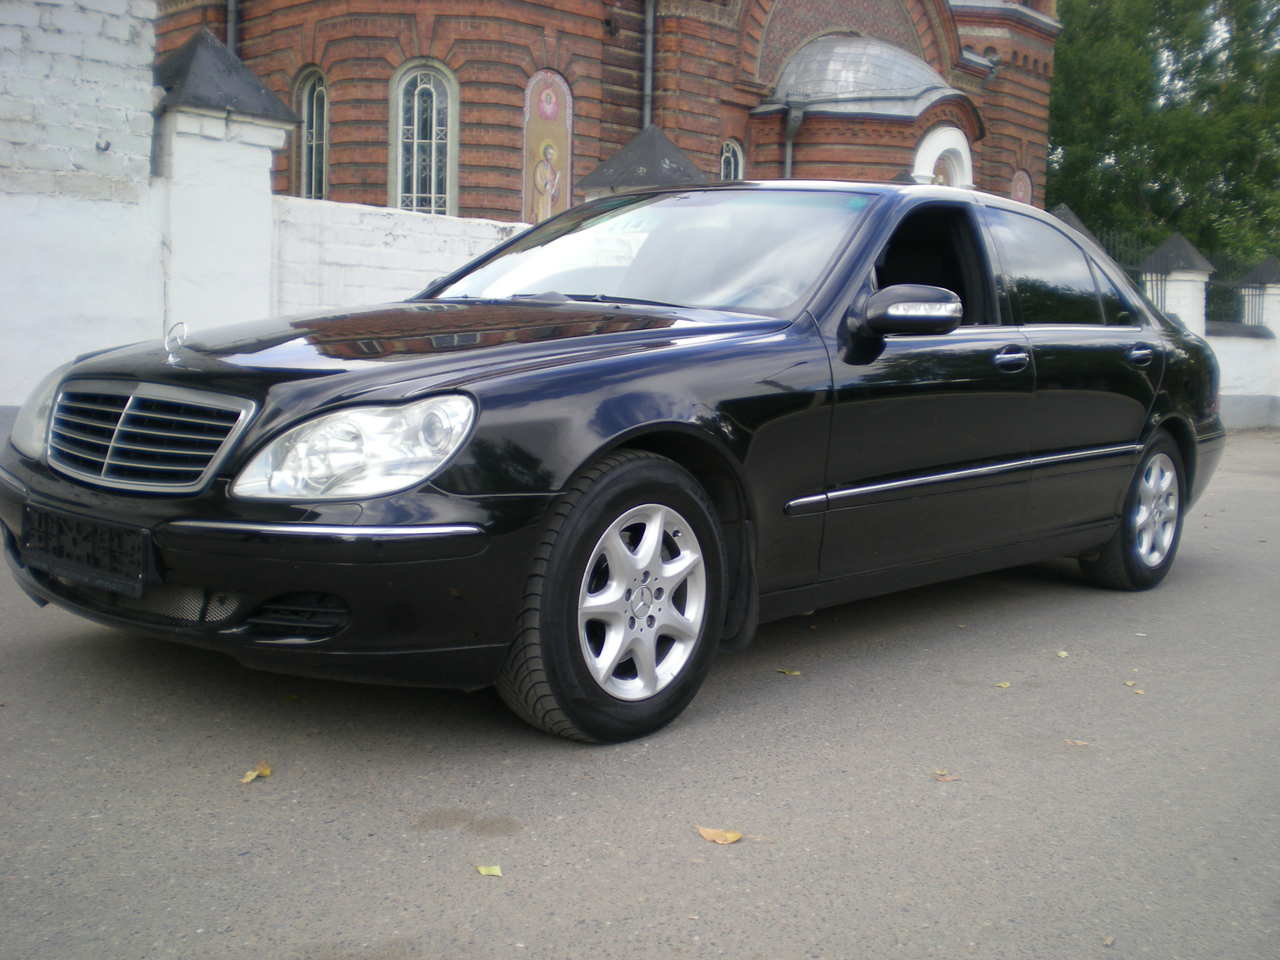 benz class sedan detail mercedes max s used rwd at